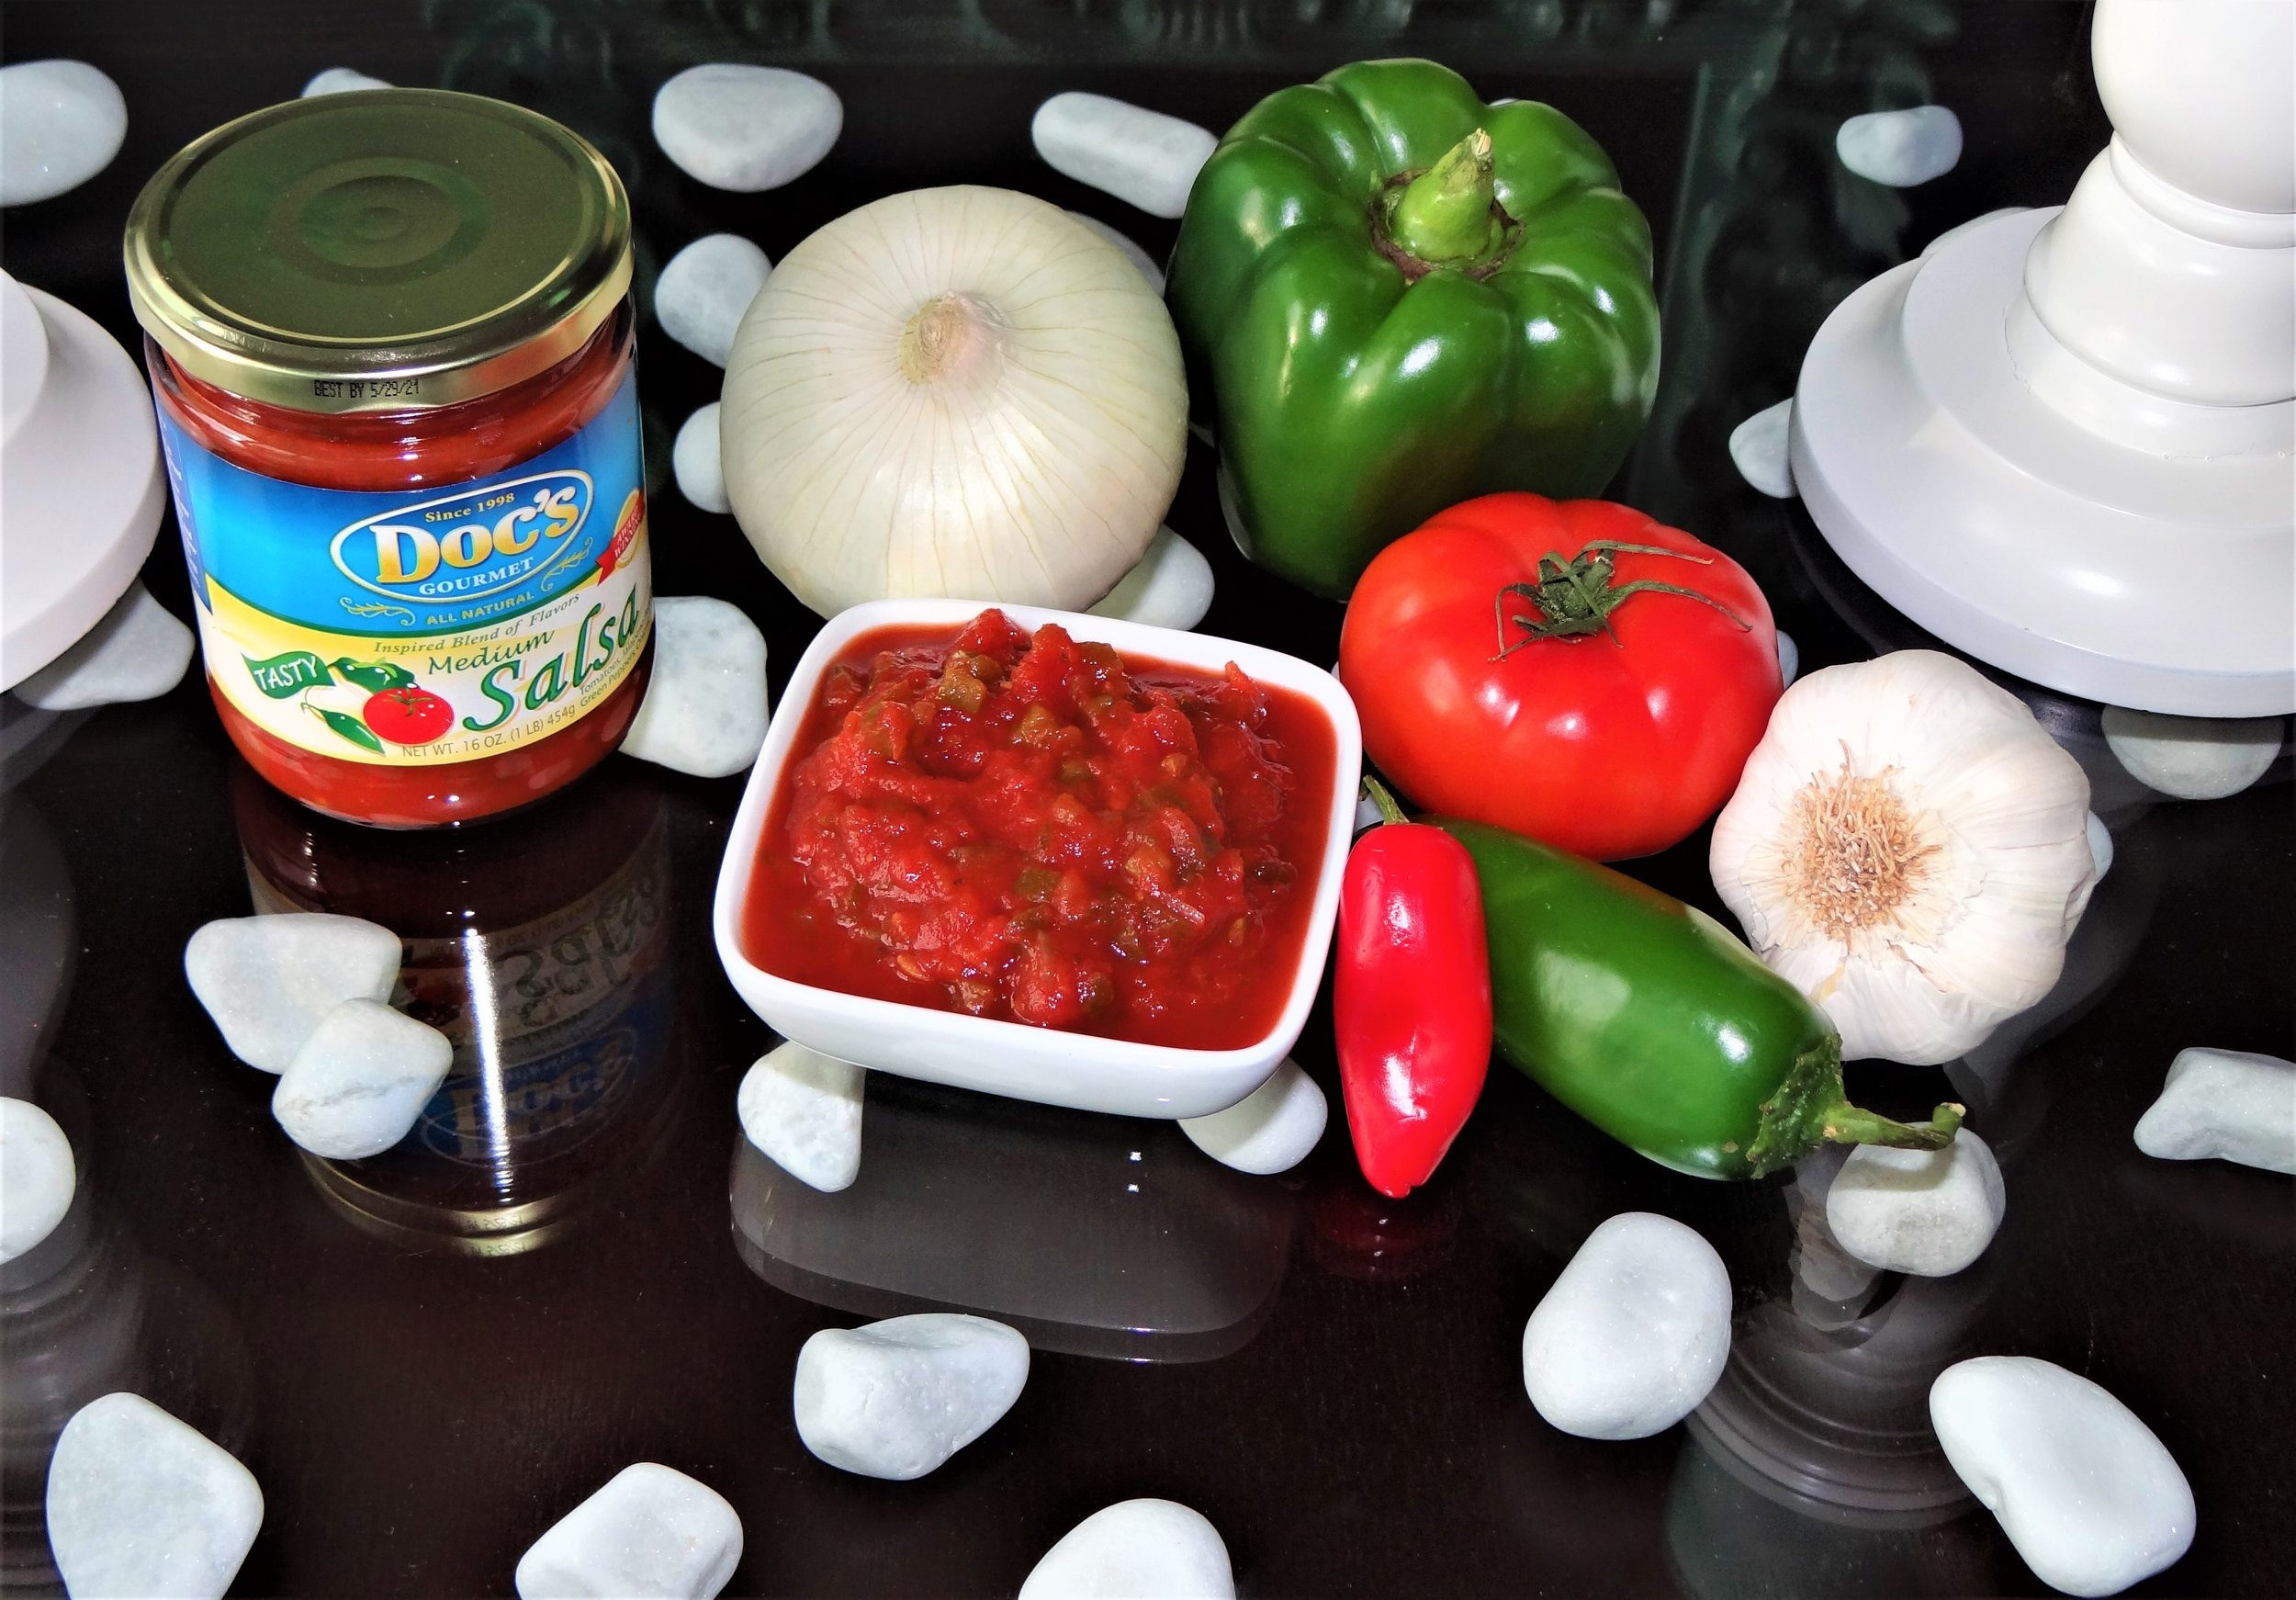 Doc's Medium Salsa - A sweet and spicy blend of tomatoes and peppers that taste just as good as your momma's homemade salsa (only in a jar)!Like your favorite chip, you can't just have one bite of this salsa.